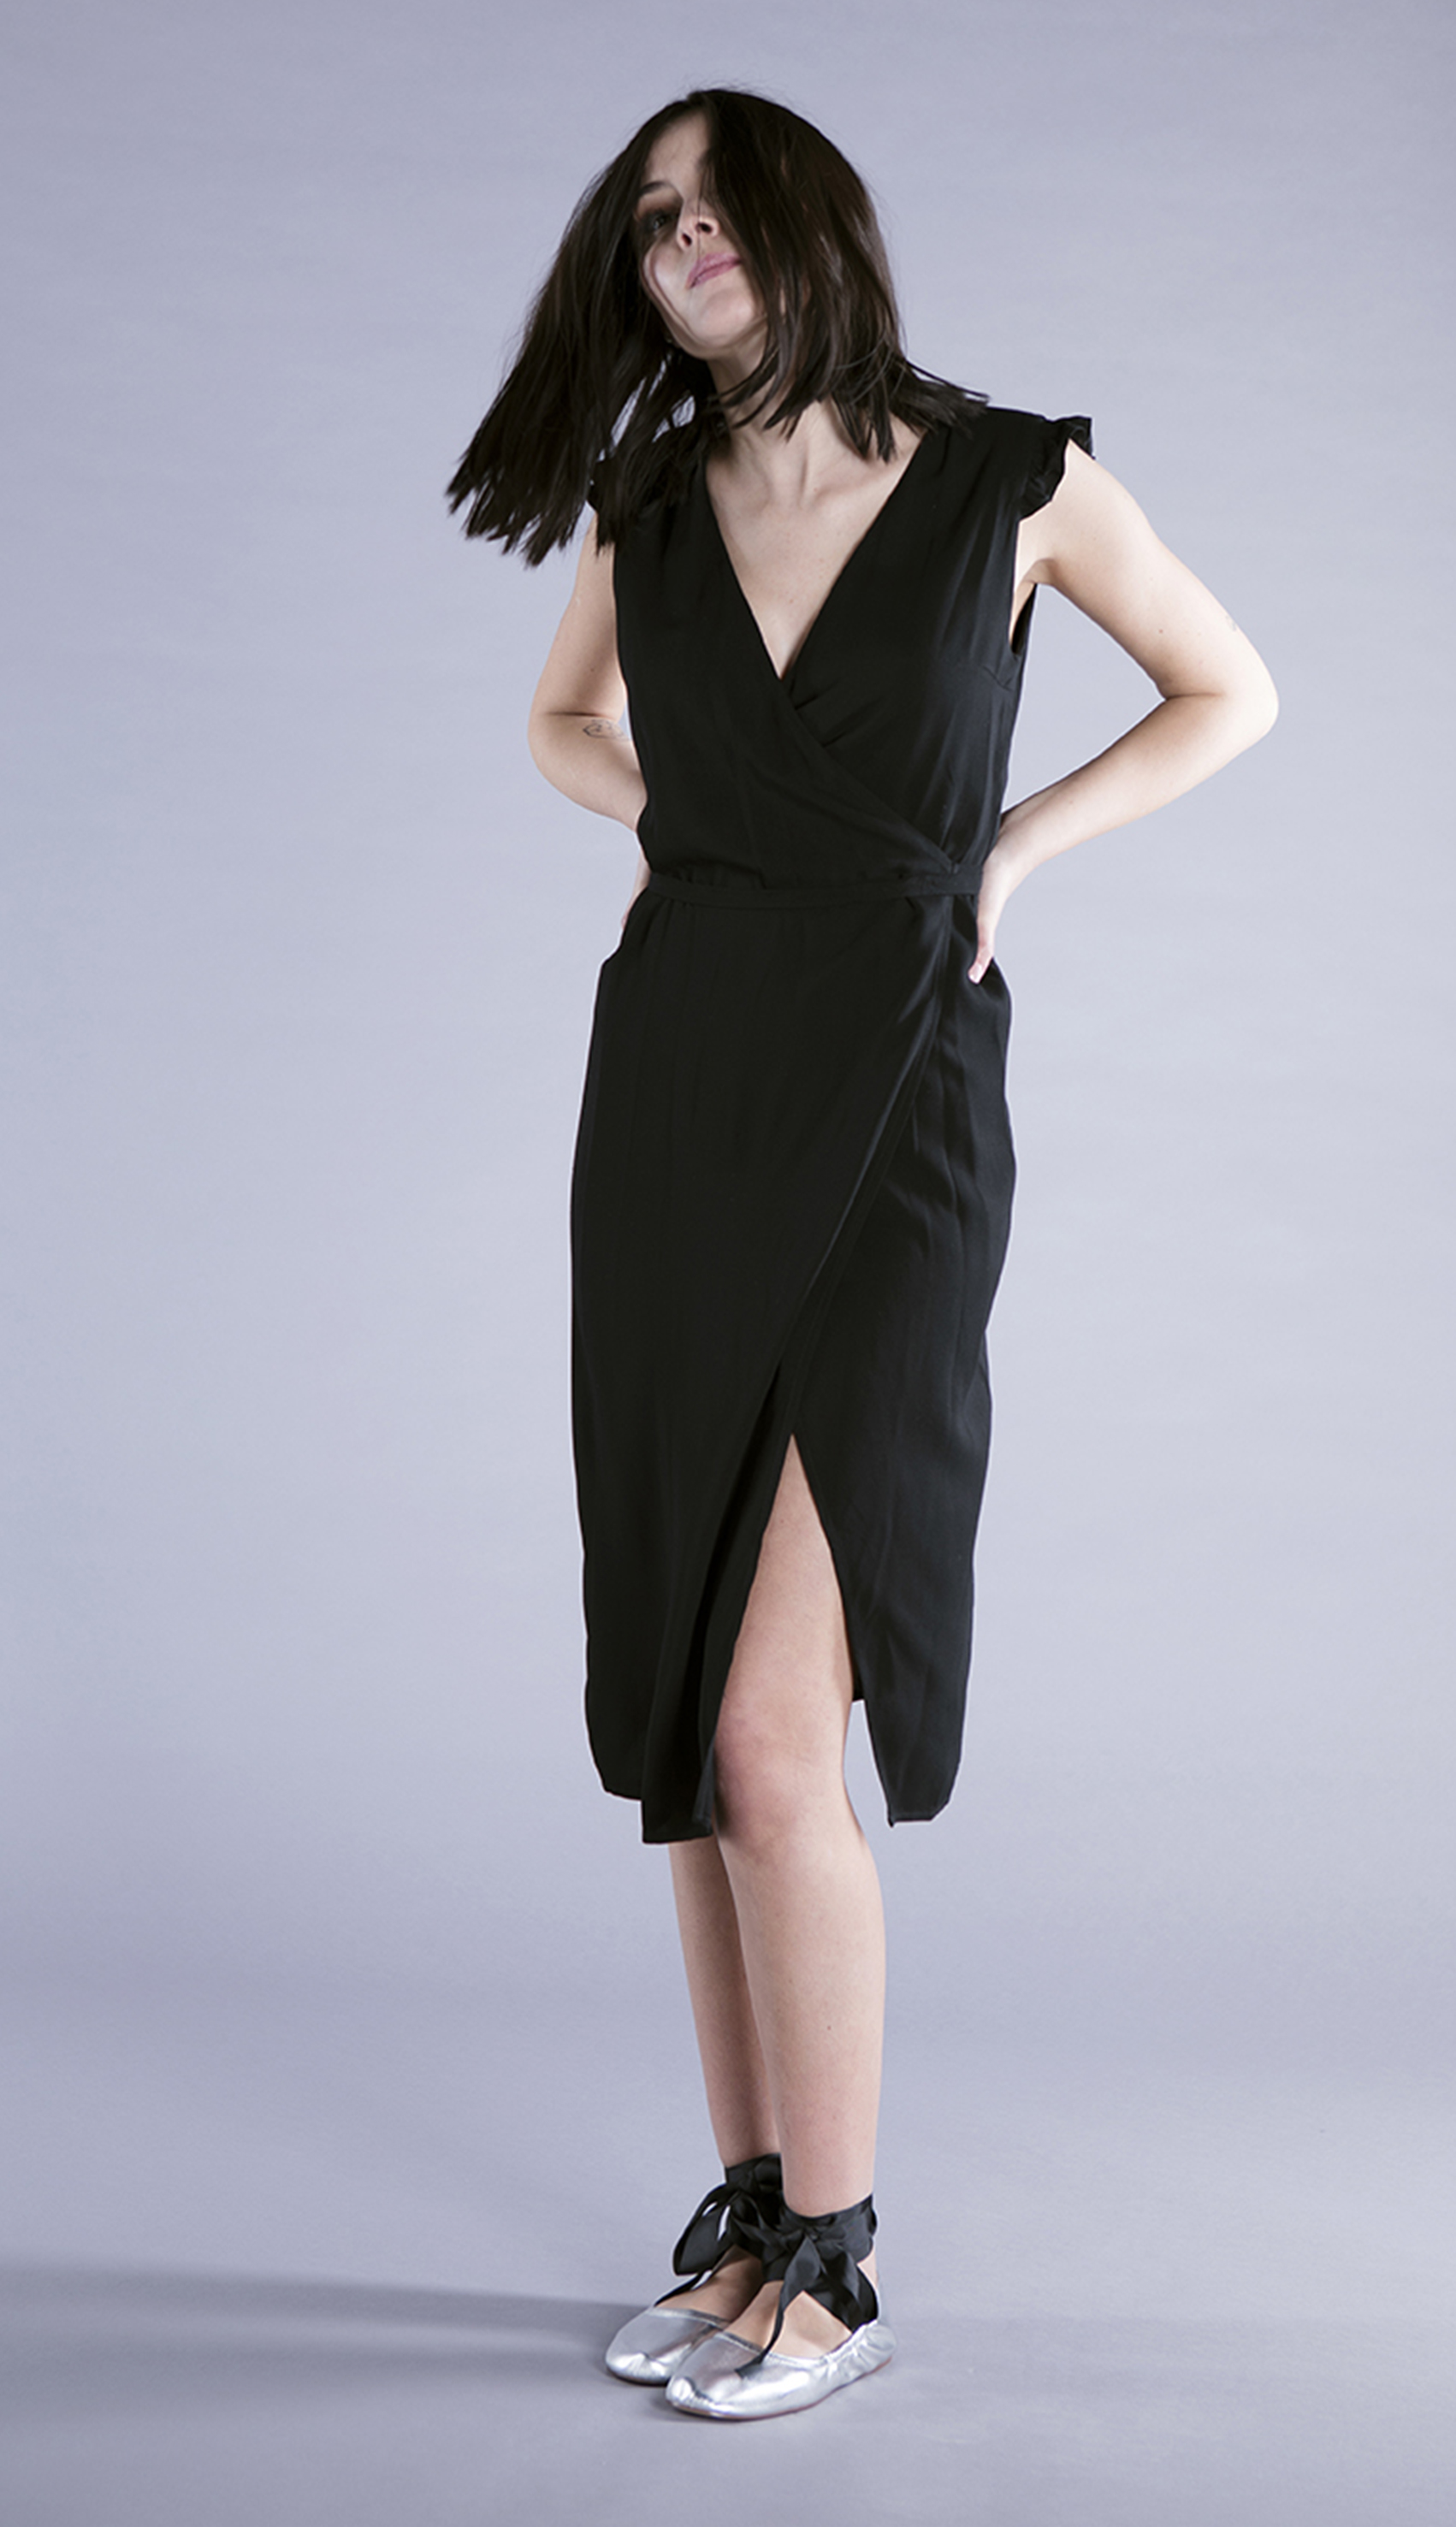 Ronnie wrap dress black made from Italian Viscose-limited edition dress 100% ethically made in Rome. For Babes who Care!